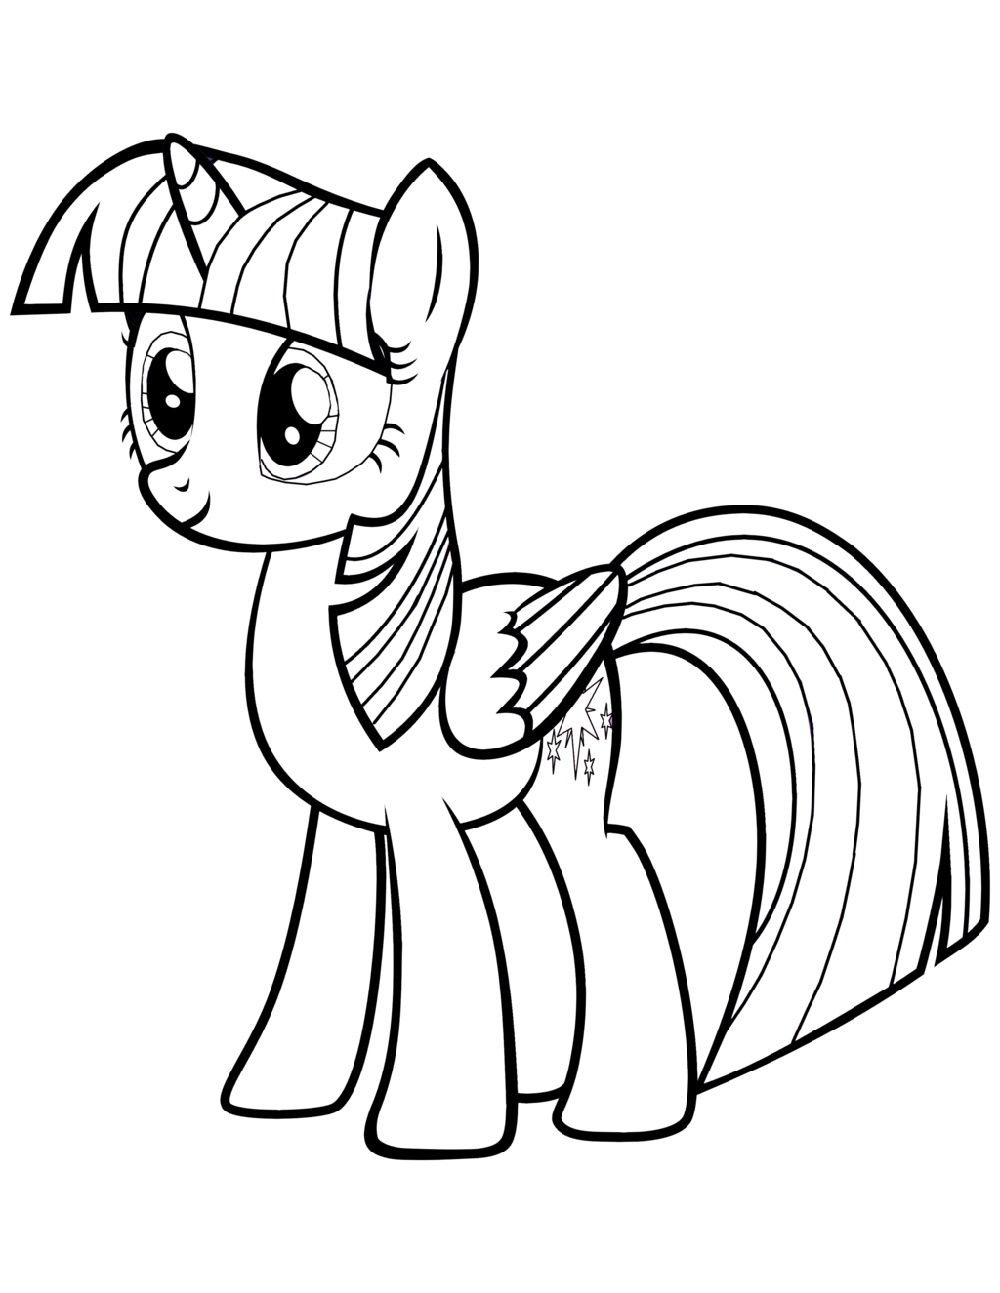 Free Alicorn Coloring Pages Printable K5 Worksheets My Little Pony Coloring Coloring Pages My Little Pony Drawing